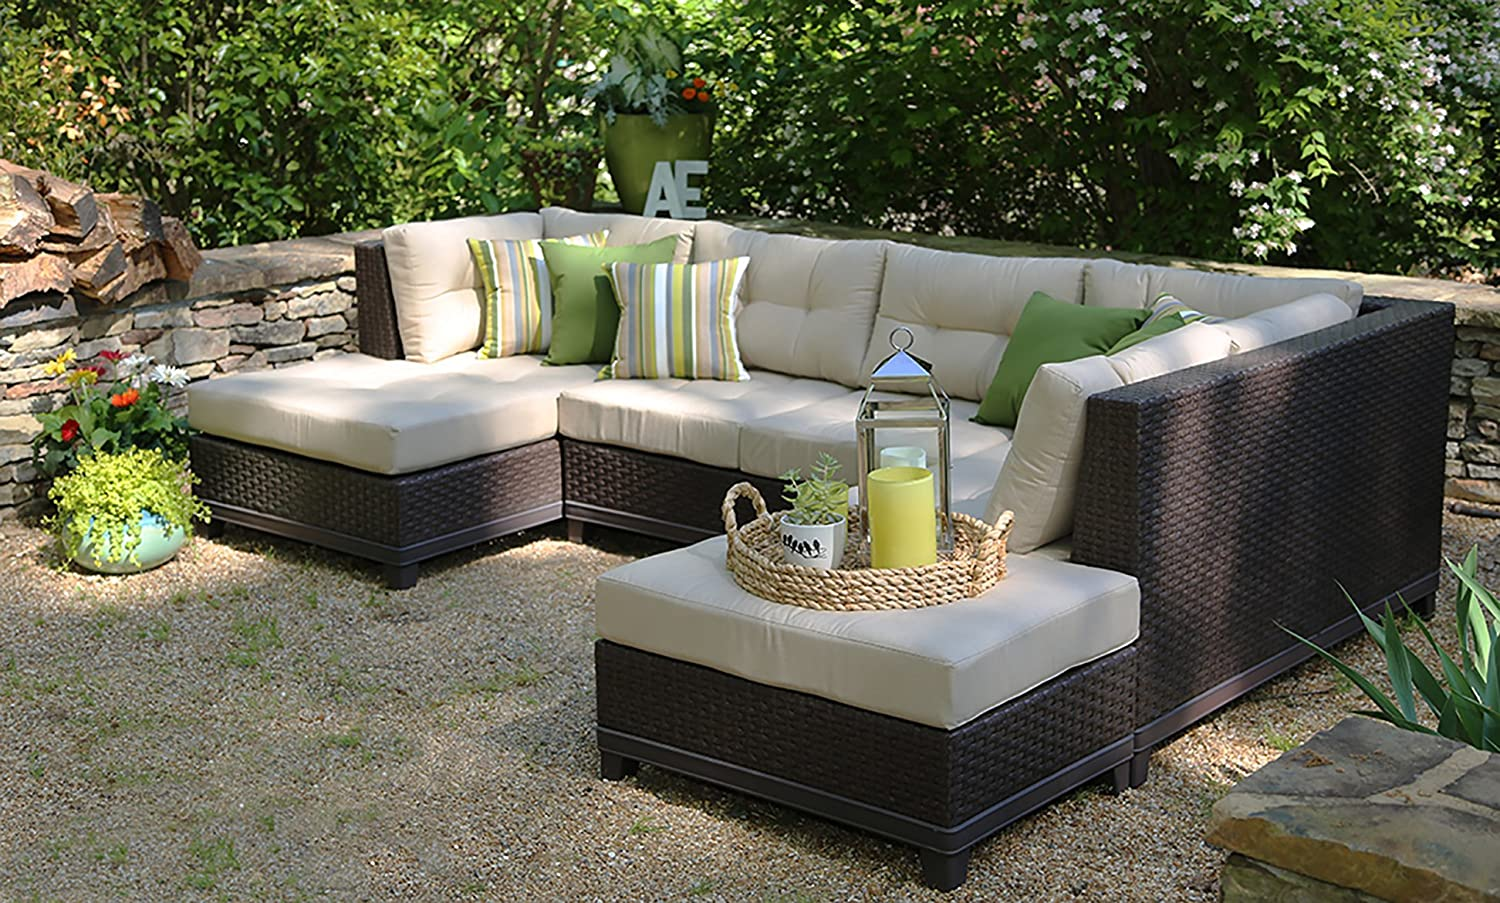 Bon Amazon.com : AE Outdoor 4 Piece All Weather Hillborough Sectional Outdoor  Furniture : Garden U0026 Outdoor